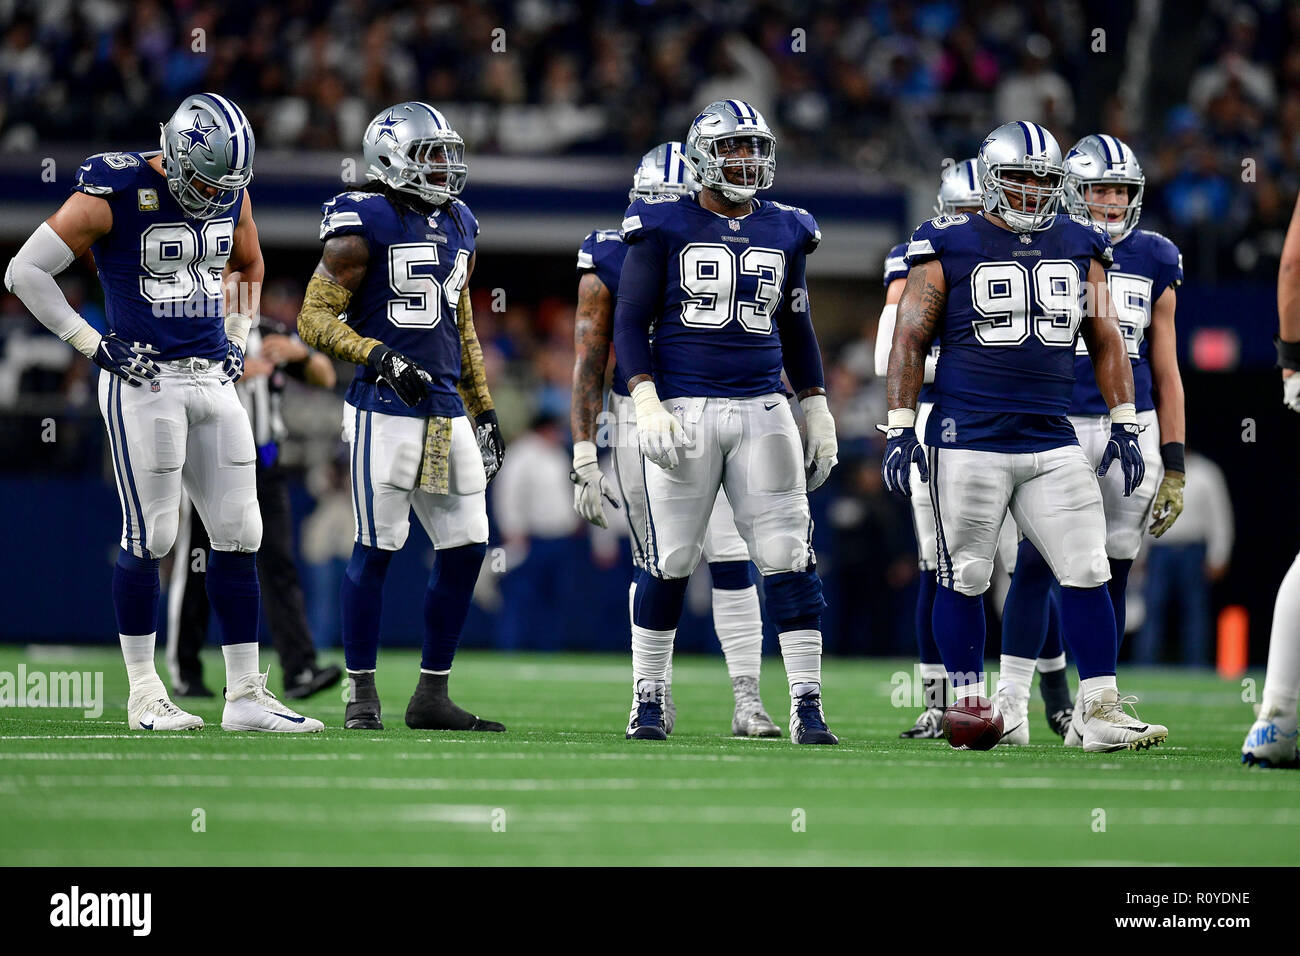 November 05, 2018:.Dallas Cowboys defensive tackle Daniel Ross (93) and the defensive line during an NFL football game between the Tennessee Titans and Dallas Cowboys at AT&T Stadium in Arlington, Texas. Manny Flores/CSM - Stock Image